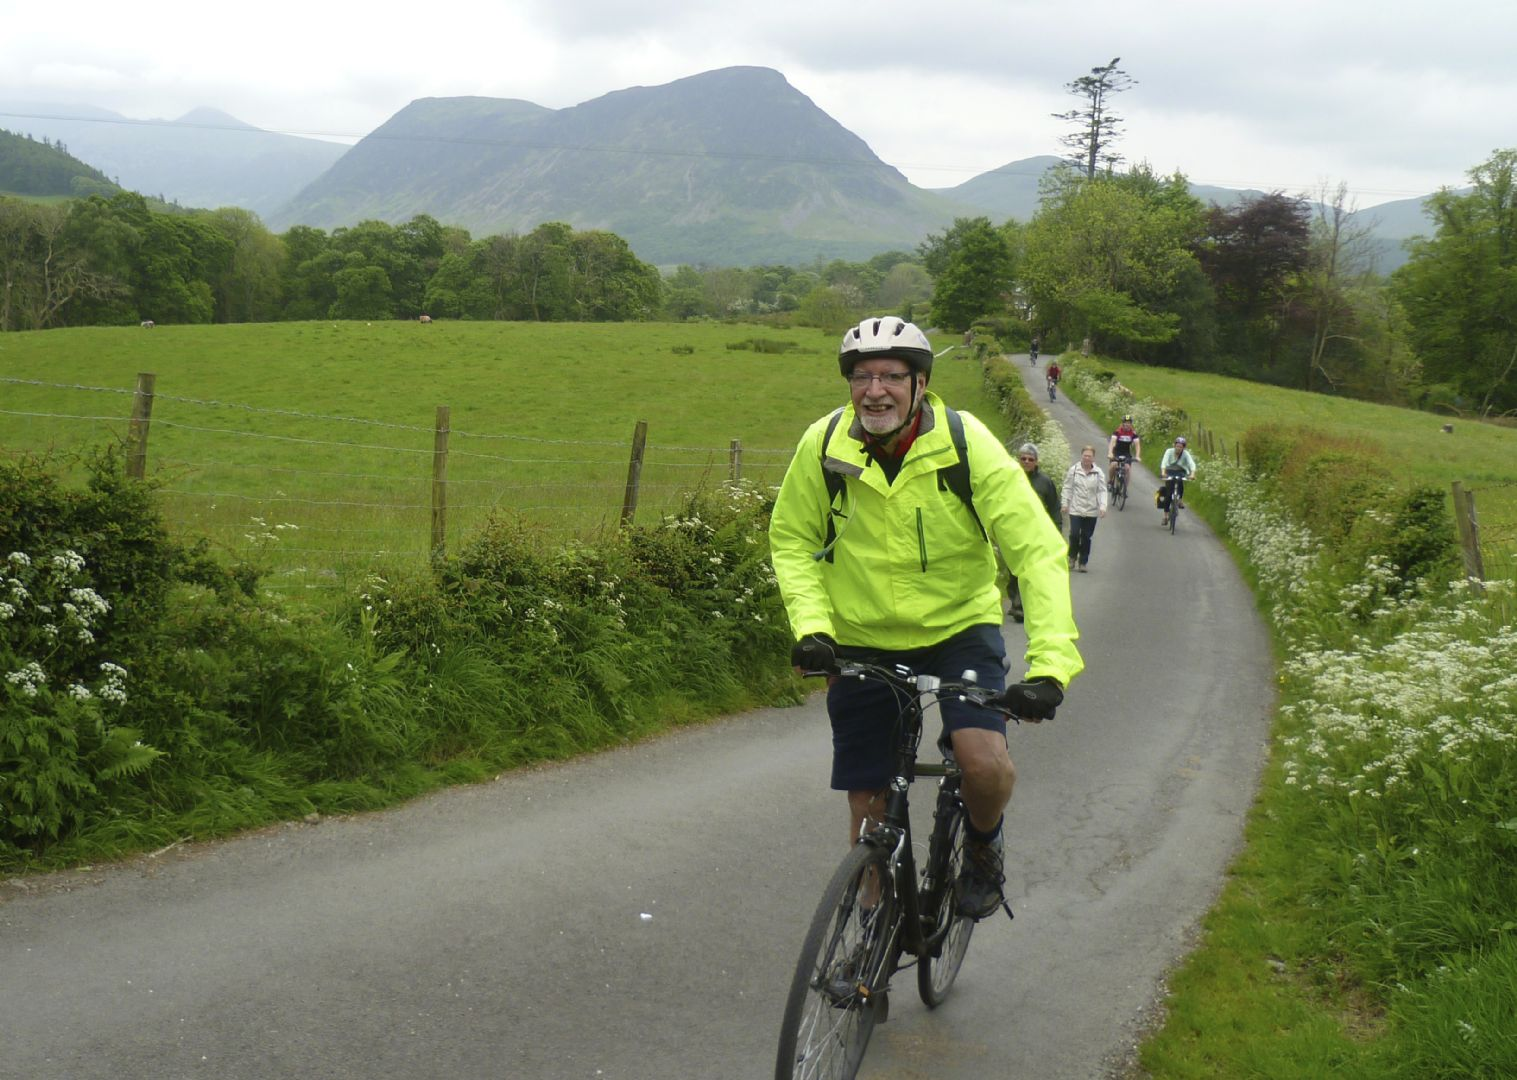 P1020379.jpg - UK - C2C - Coast to Coast 3 Days Cycling - Self-Guided Leisure Cycling Holiday - Leisure Cycling